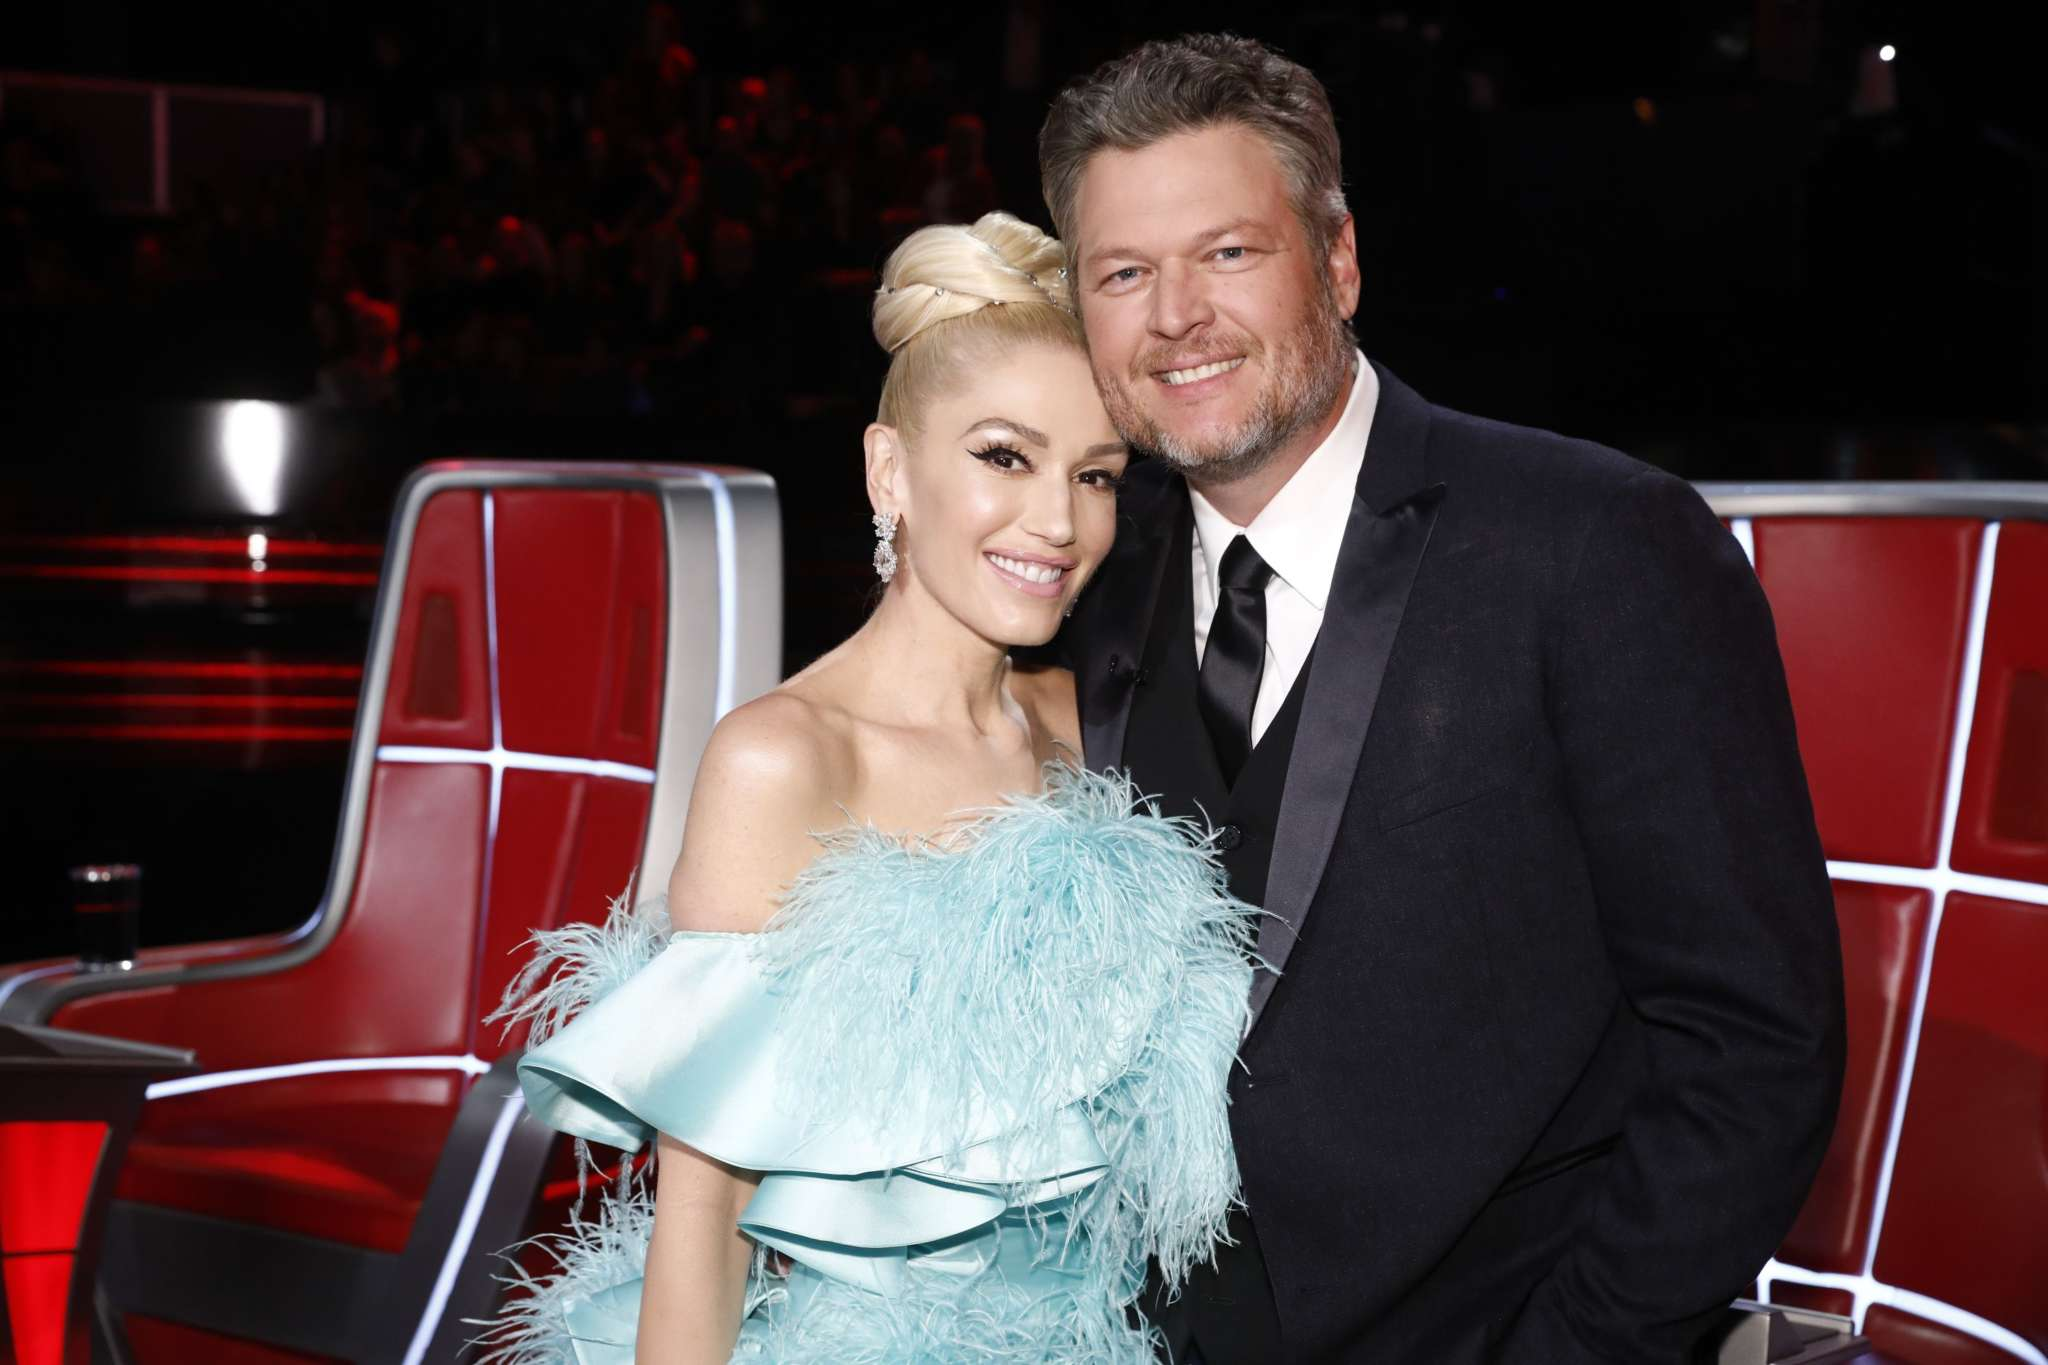 Blake Shelton wants to get married